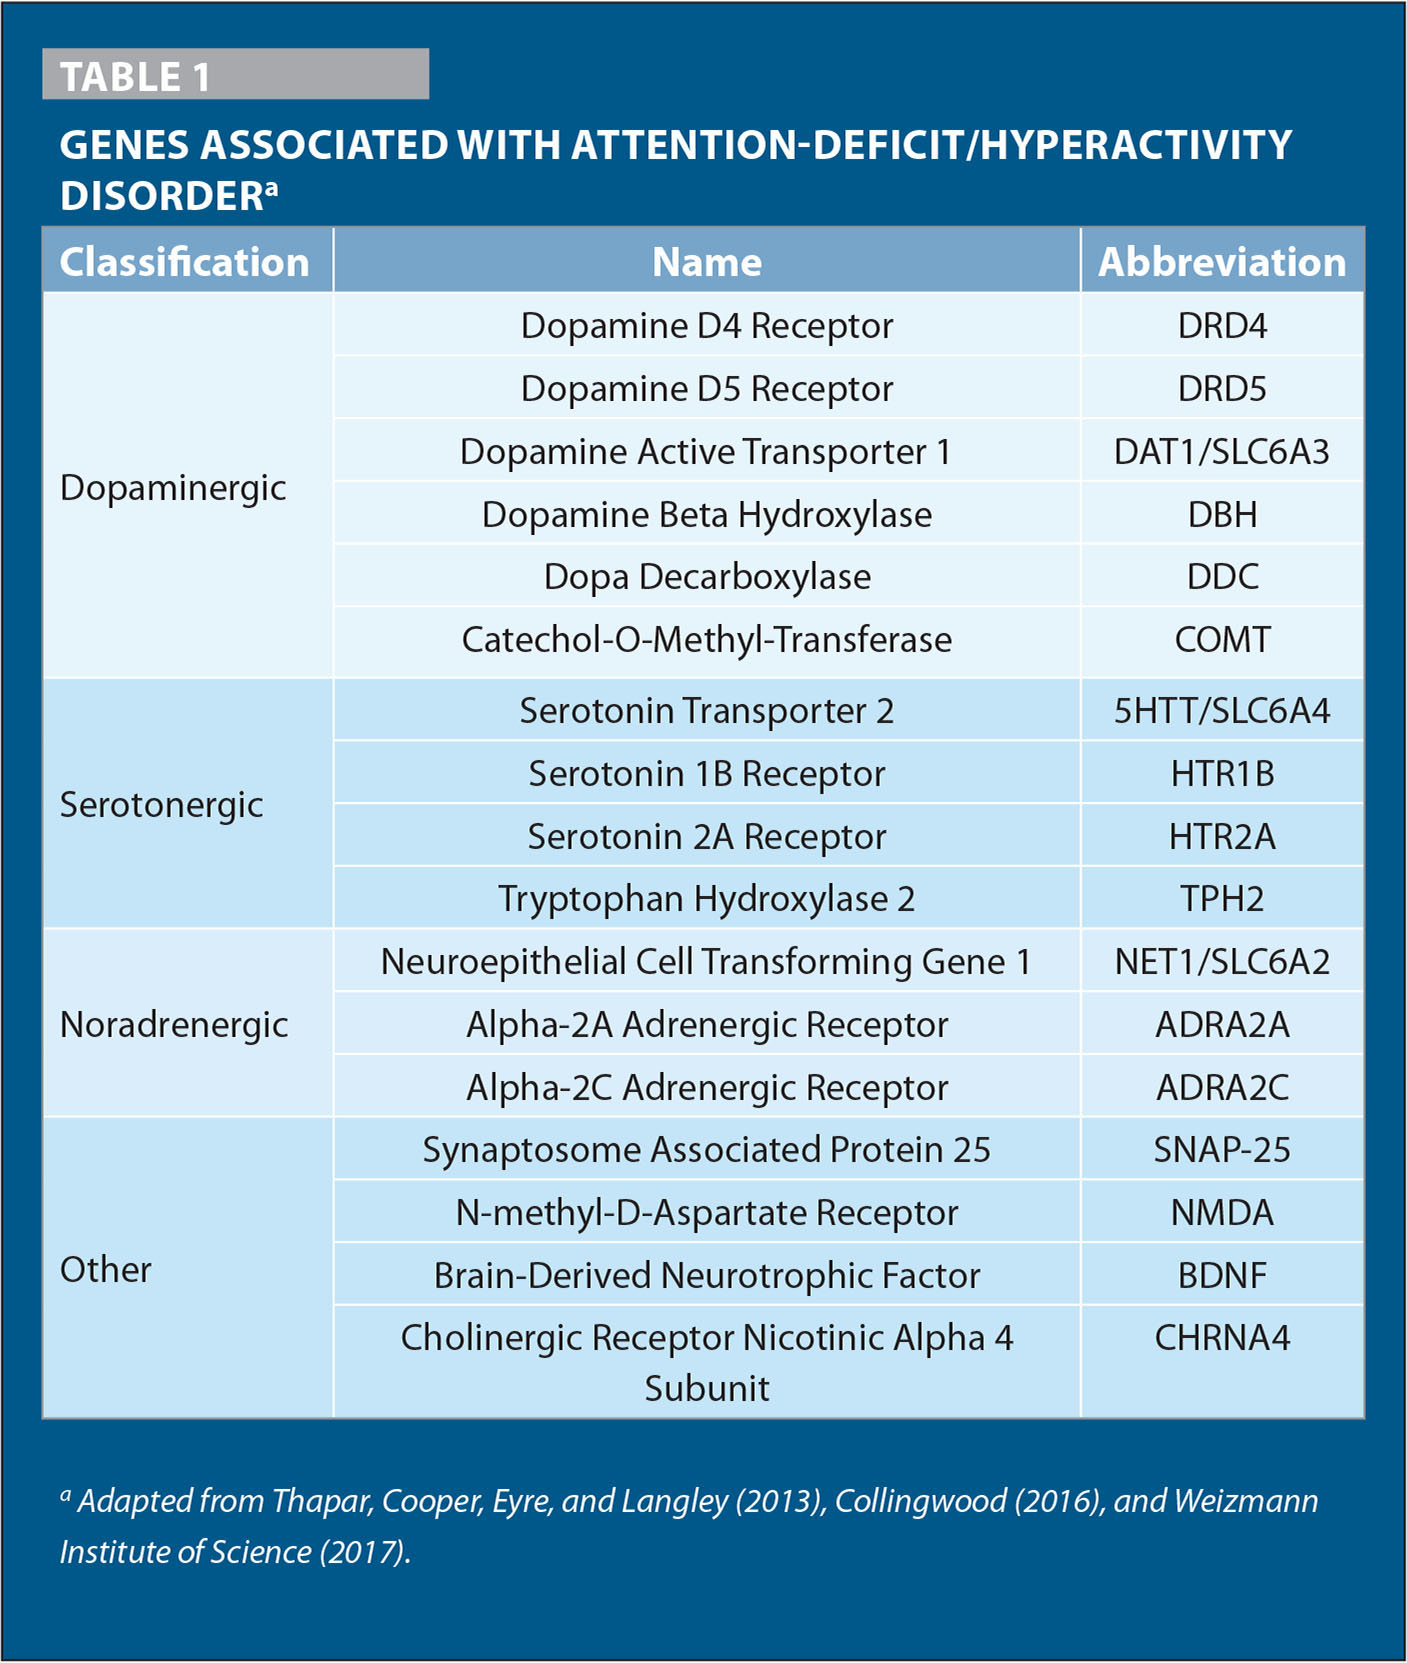 Genes Associated with Attention-Deficit/Hyperactivity Disordera